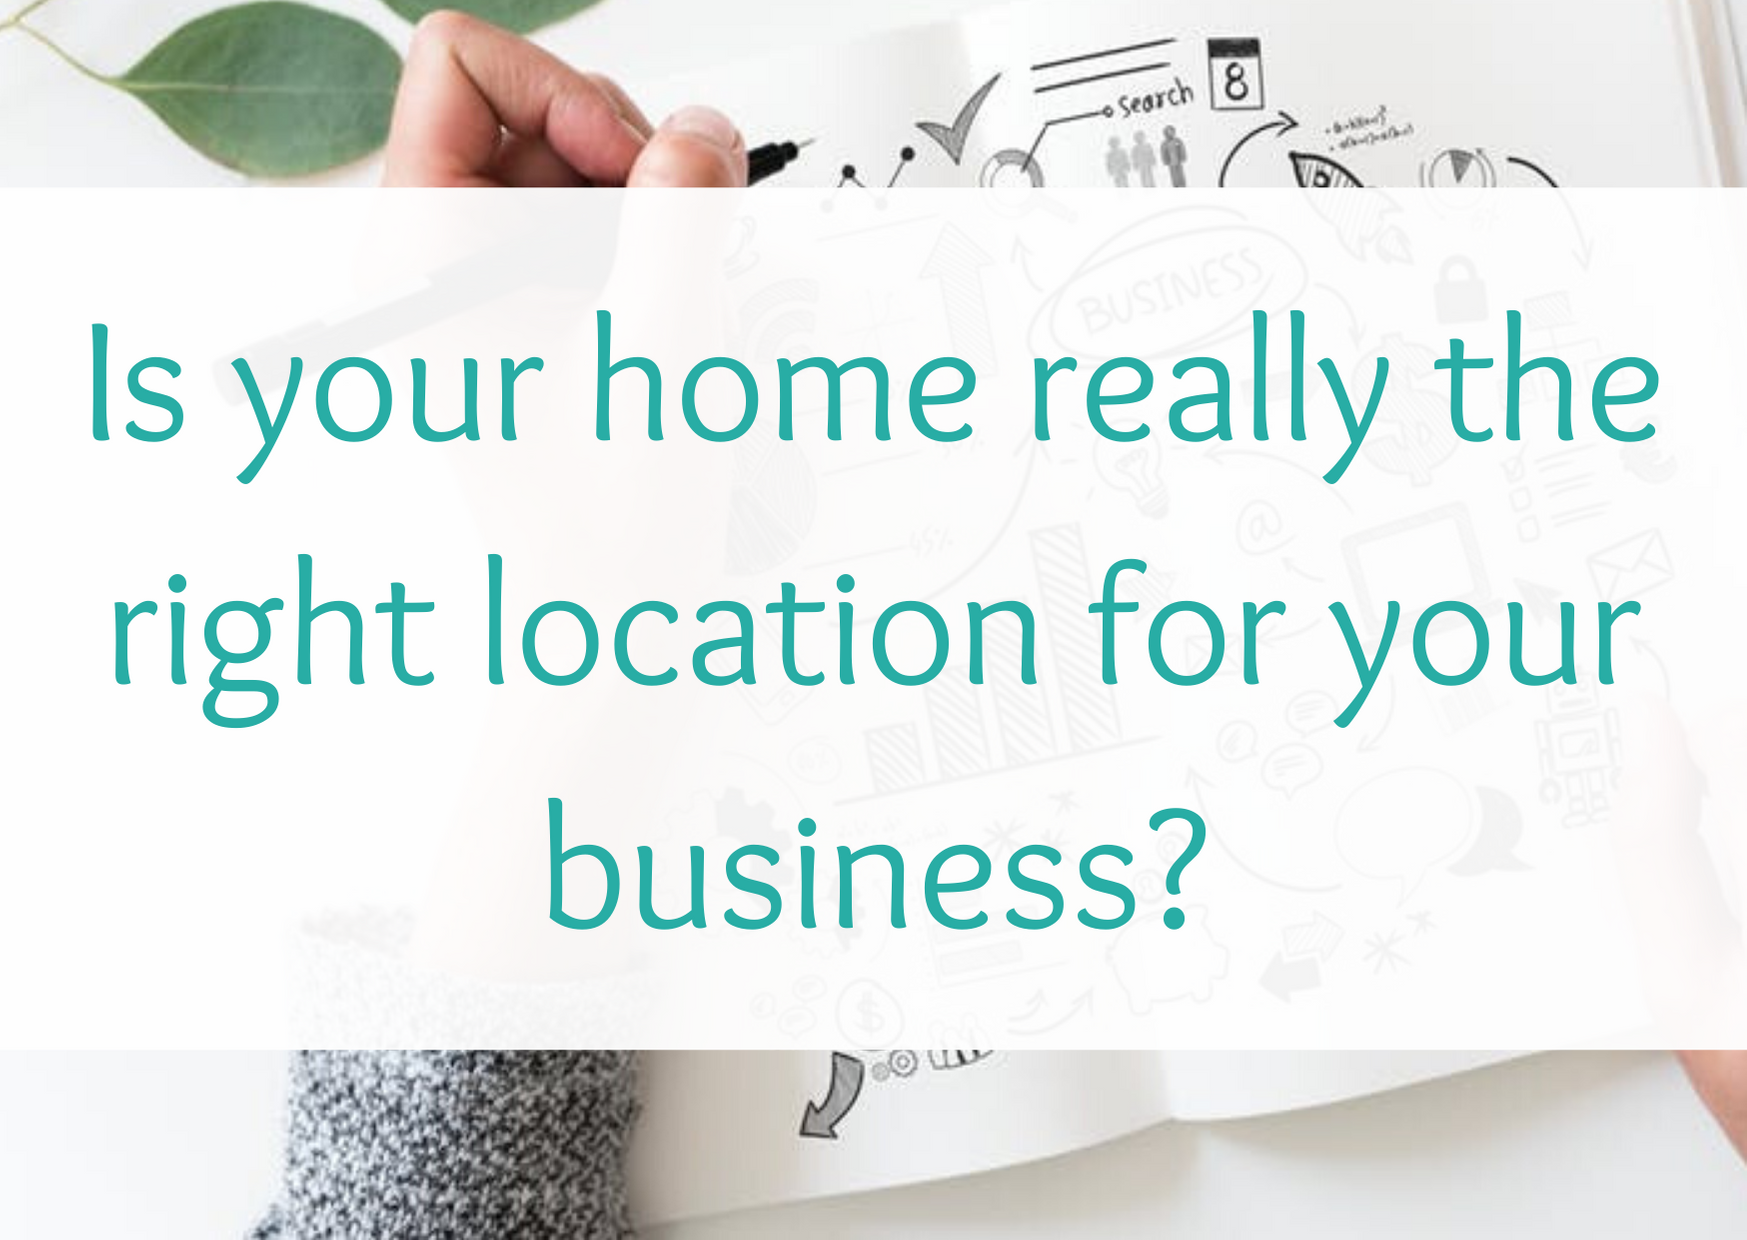 Is your home really the right location for your business?